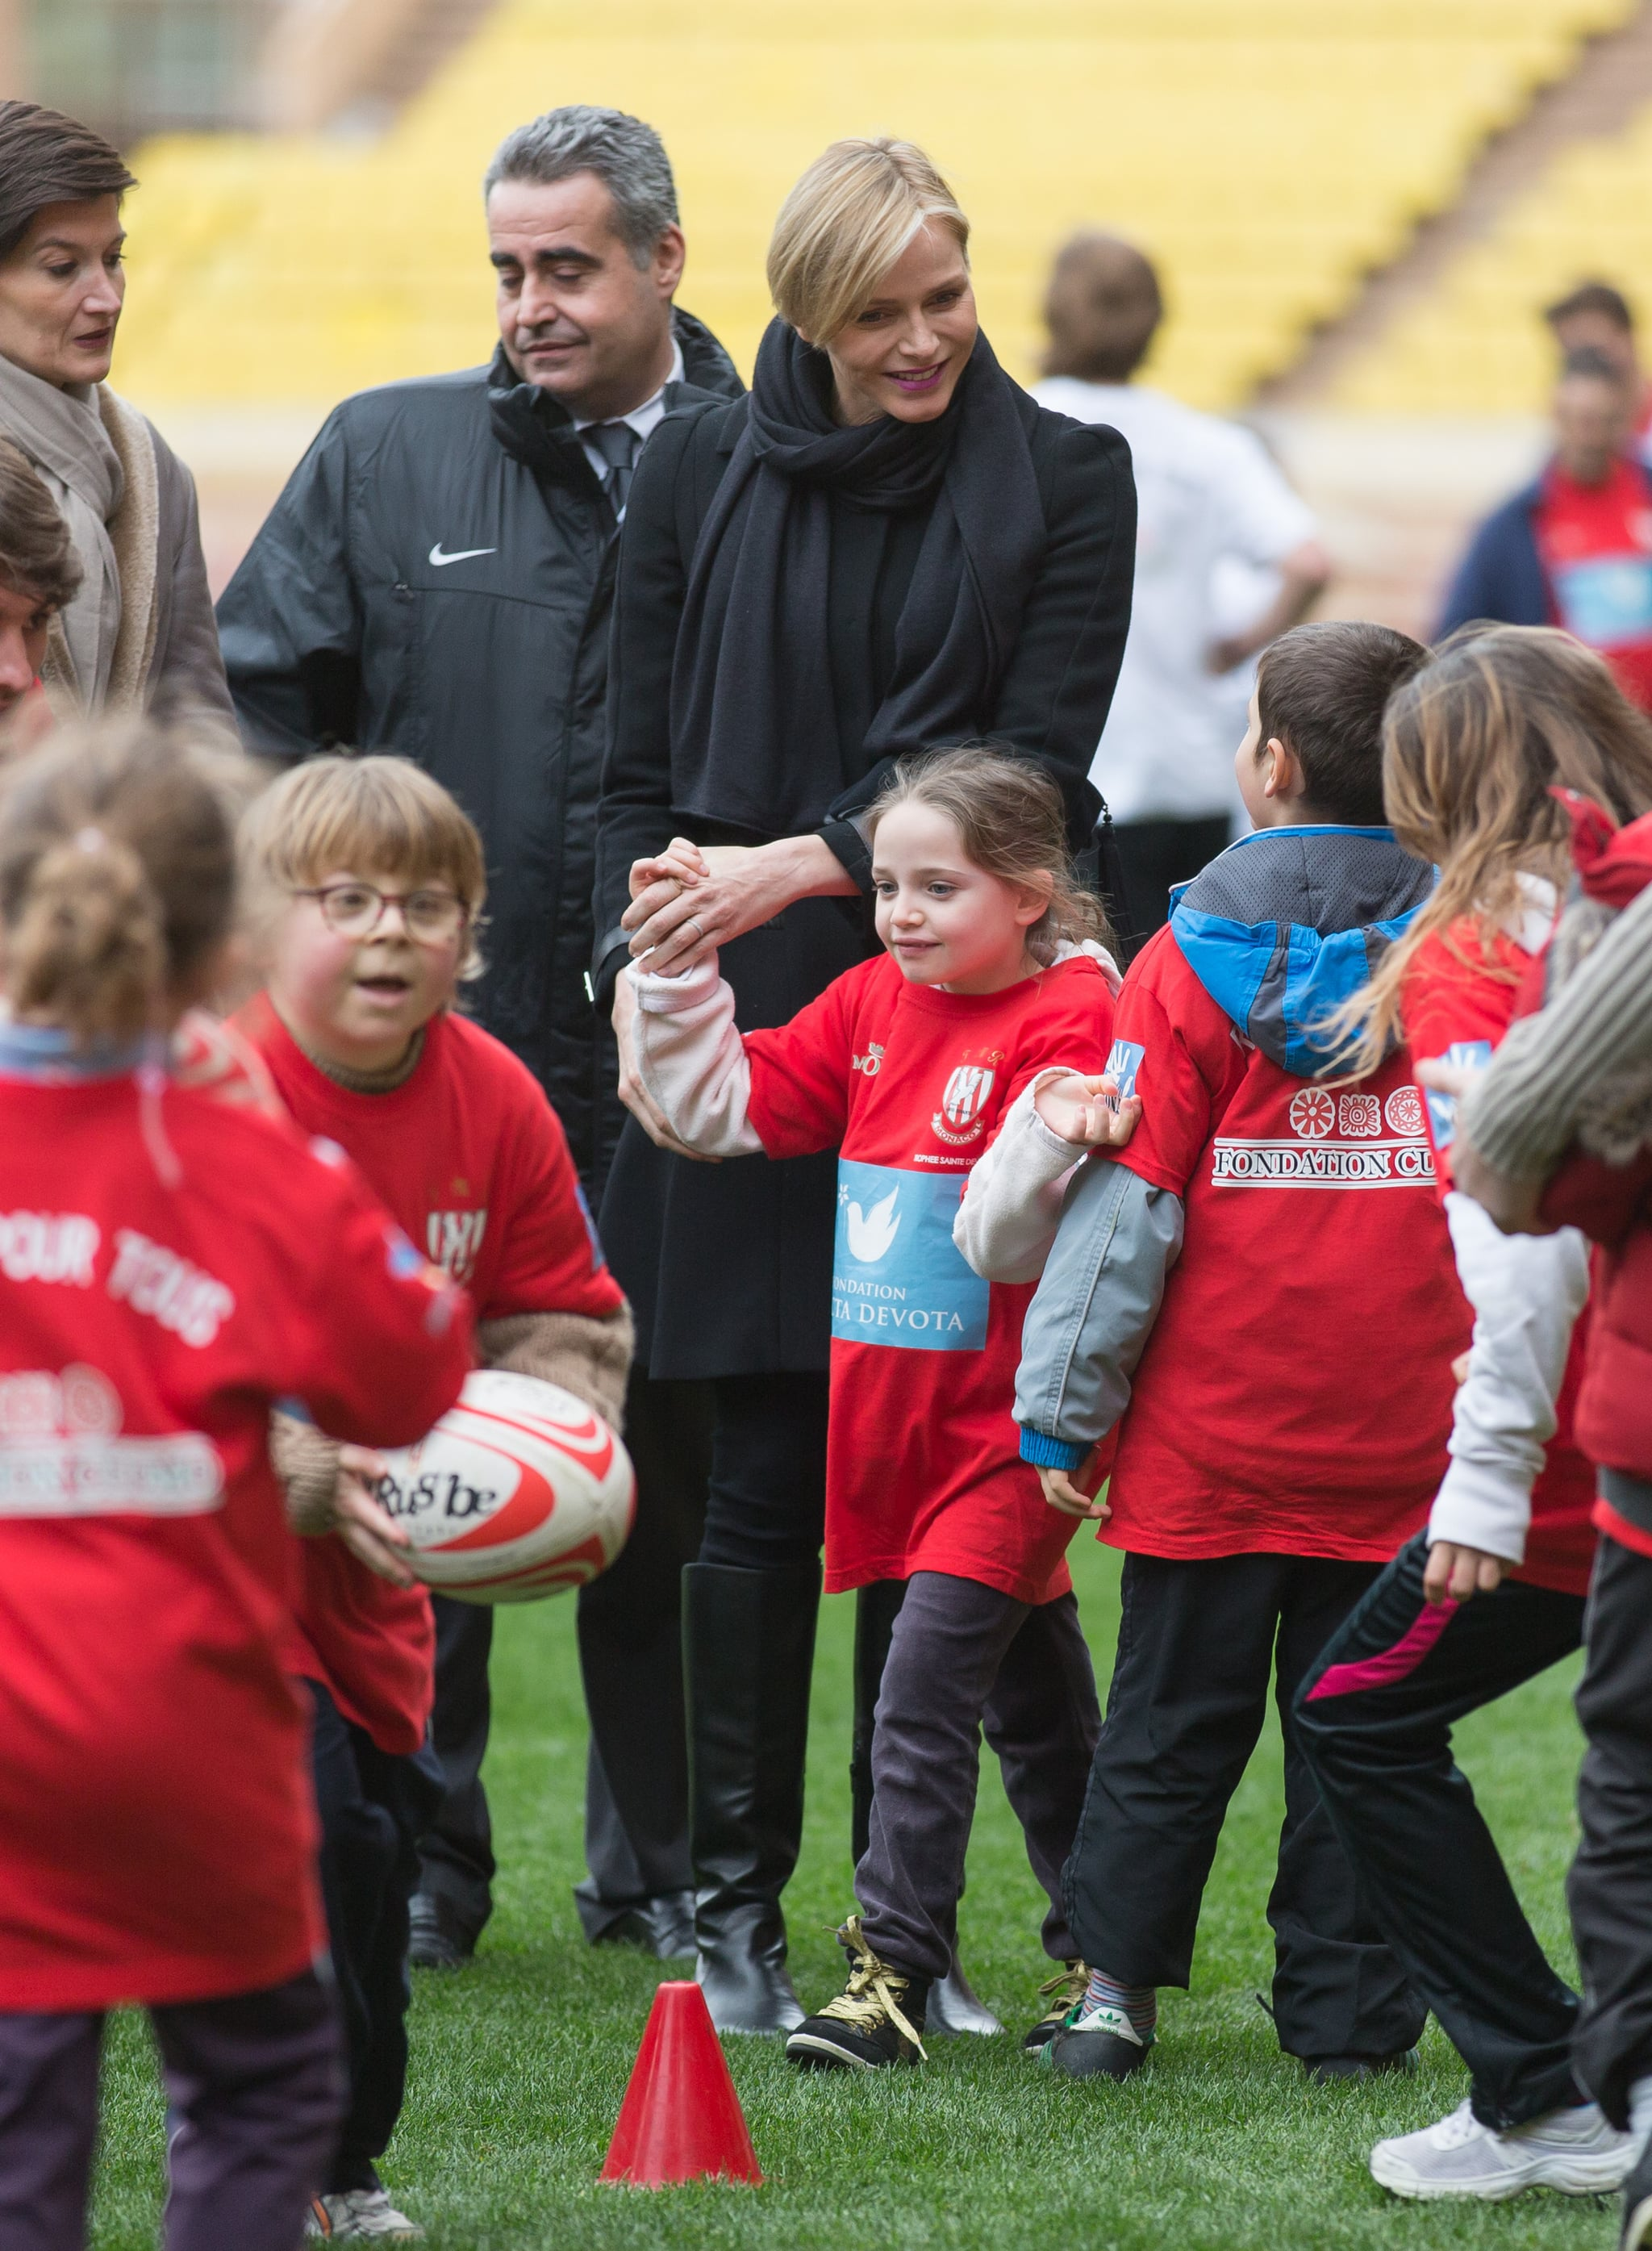 Princess Charlene channeled her sporty side while hanging out with children at the 4th Challenge Sainte-Devote of Rugby in February 2014.